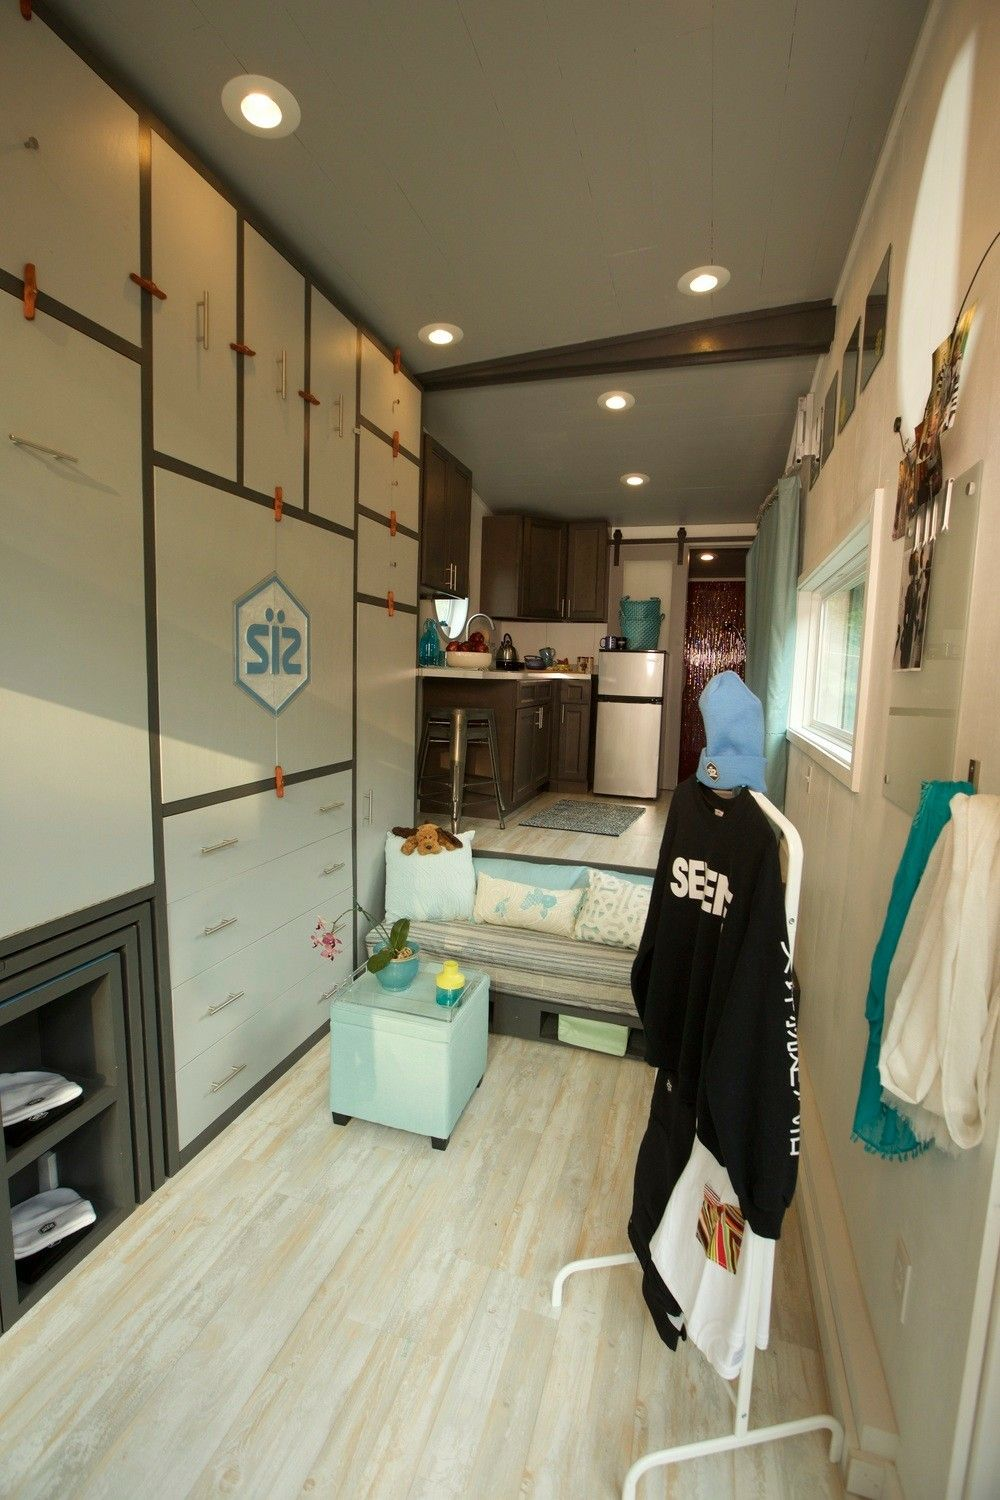 192 sq feet on wheels that includes a home with kitchen, tub bath ...